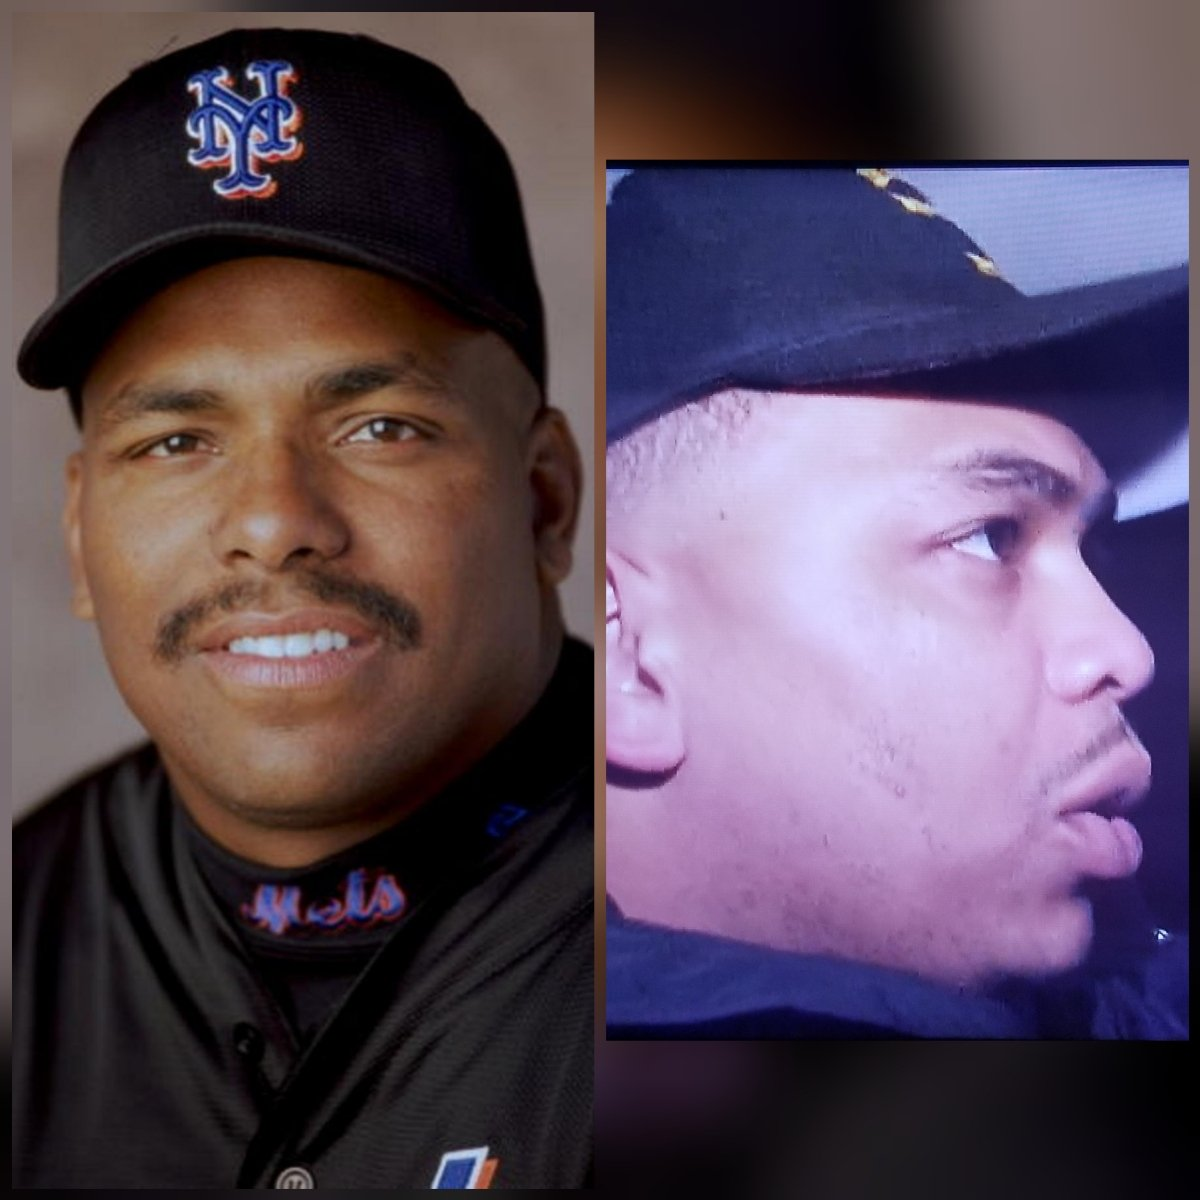 So nobody was going to tell me that Bobby Bonilla doubled as a homicide detective in Birmingham, AL huh? https://t.co/8CShwg9Hcr